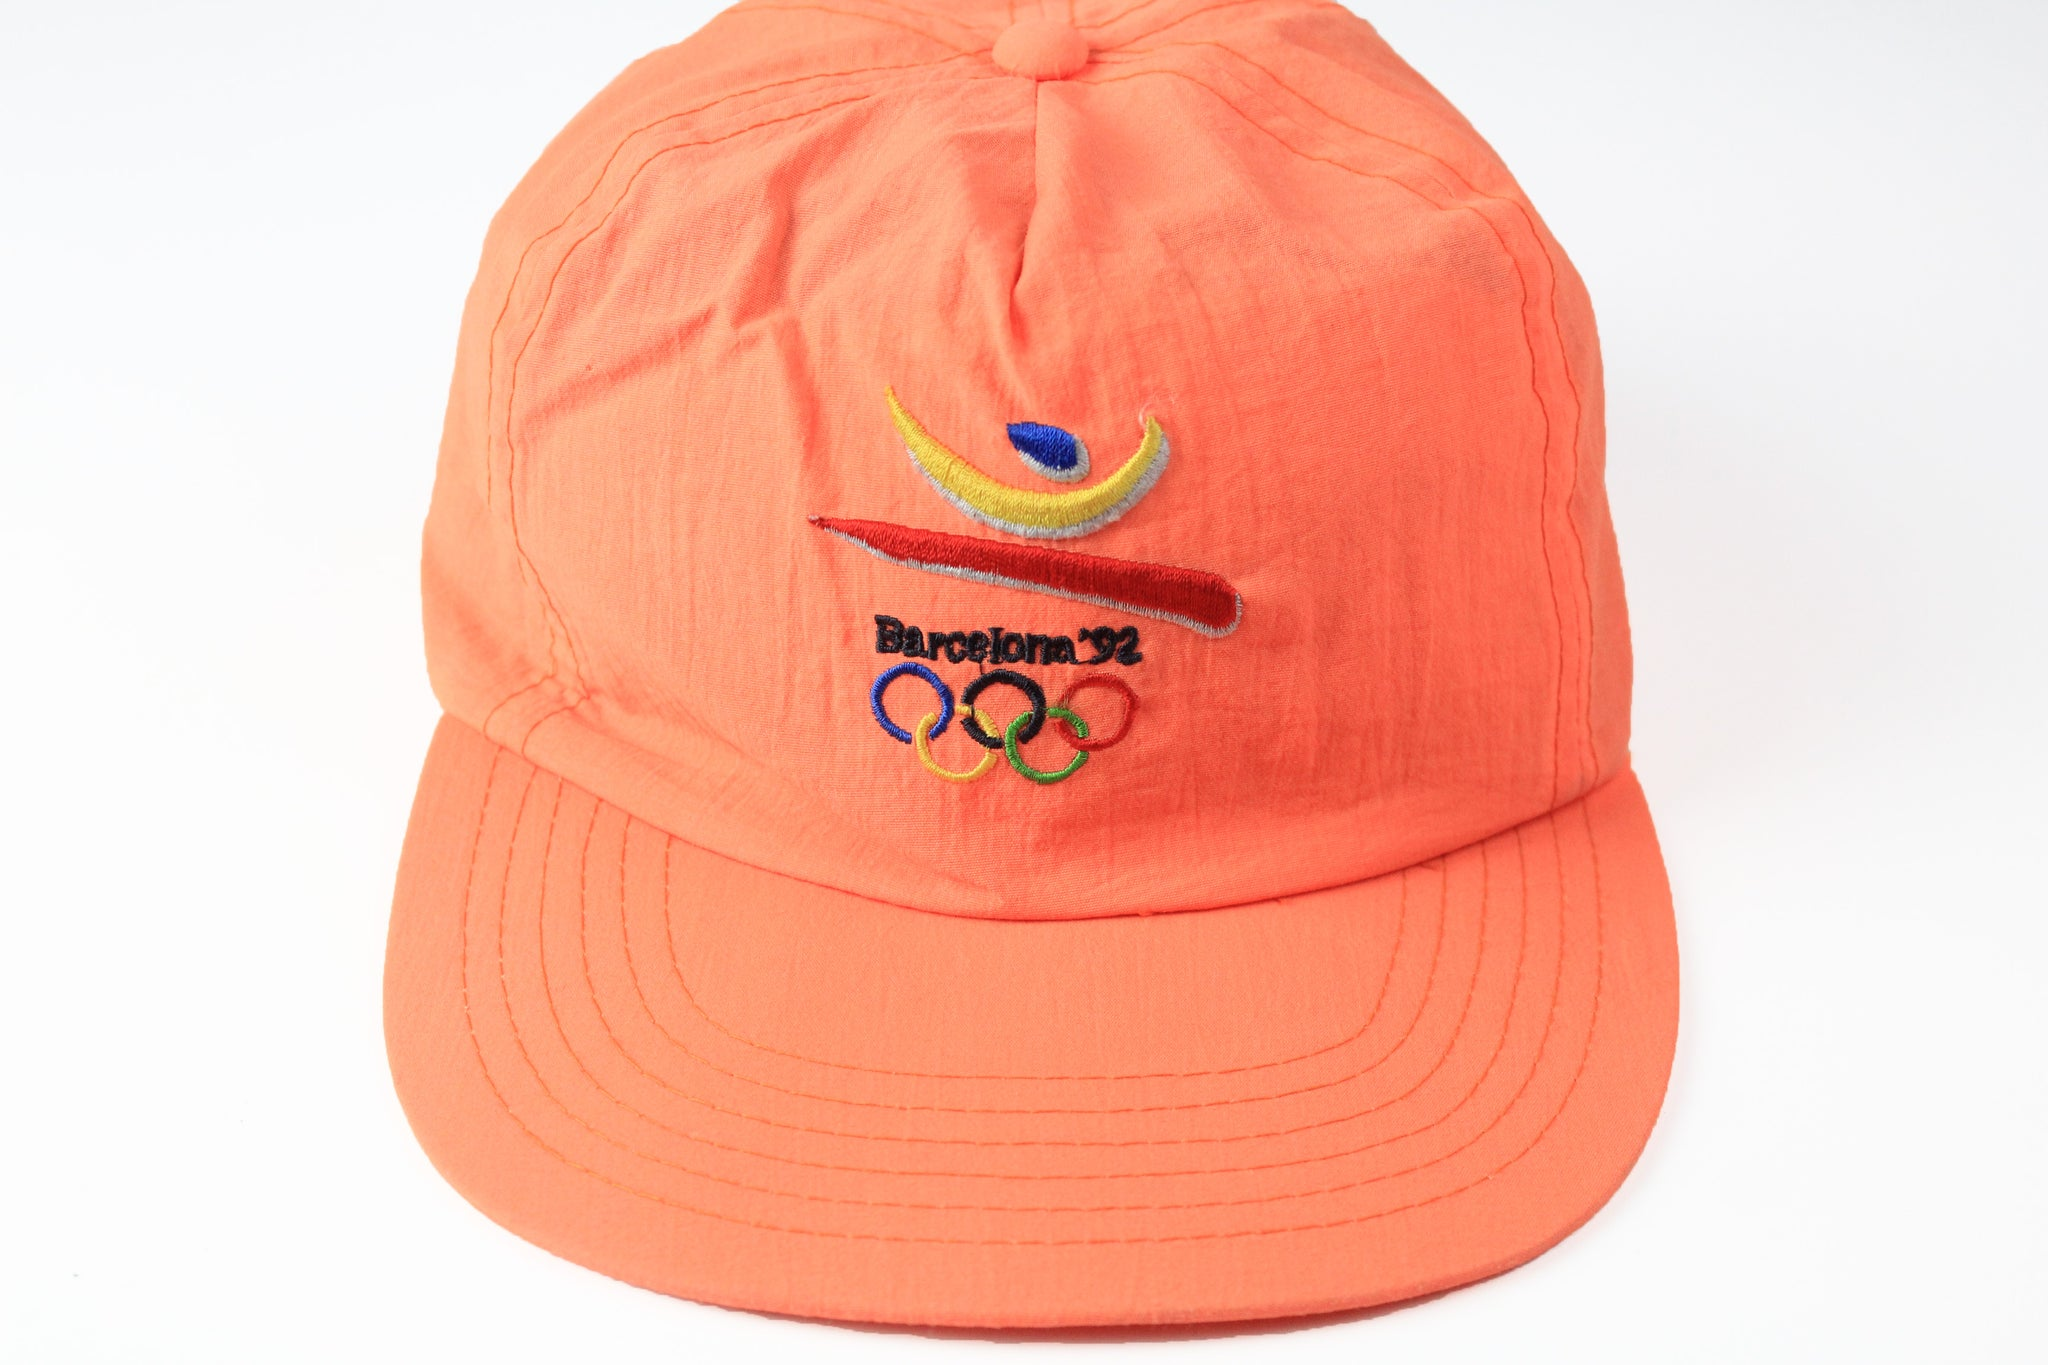 Vintage Barcelona 1992 Olympic Games Cap